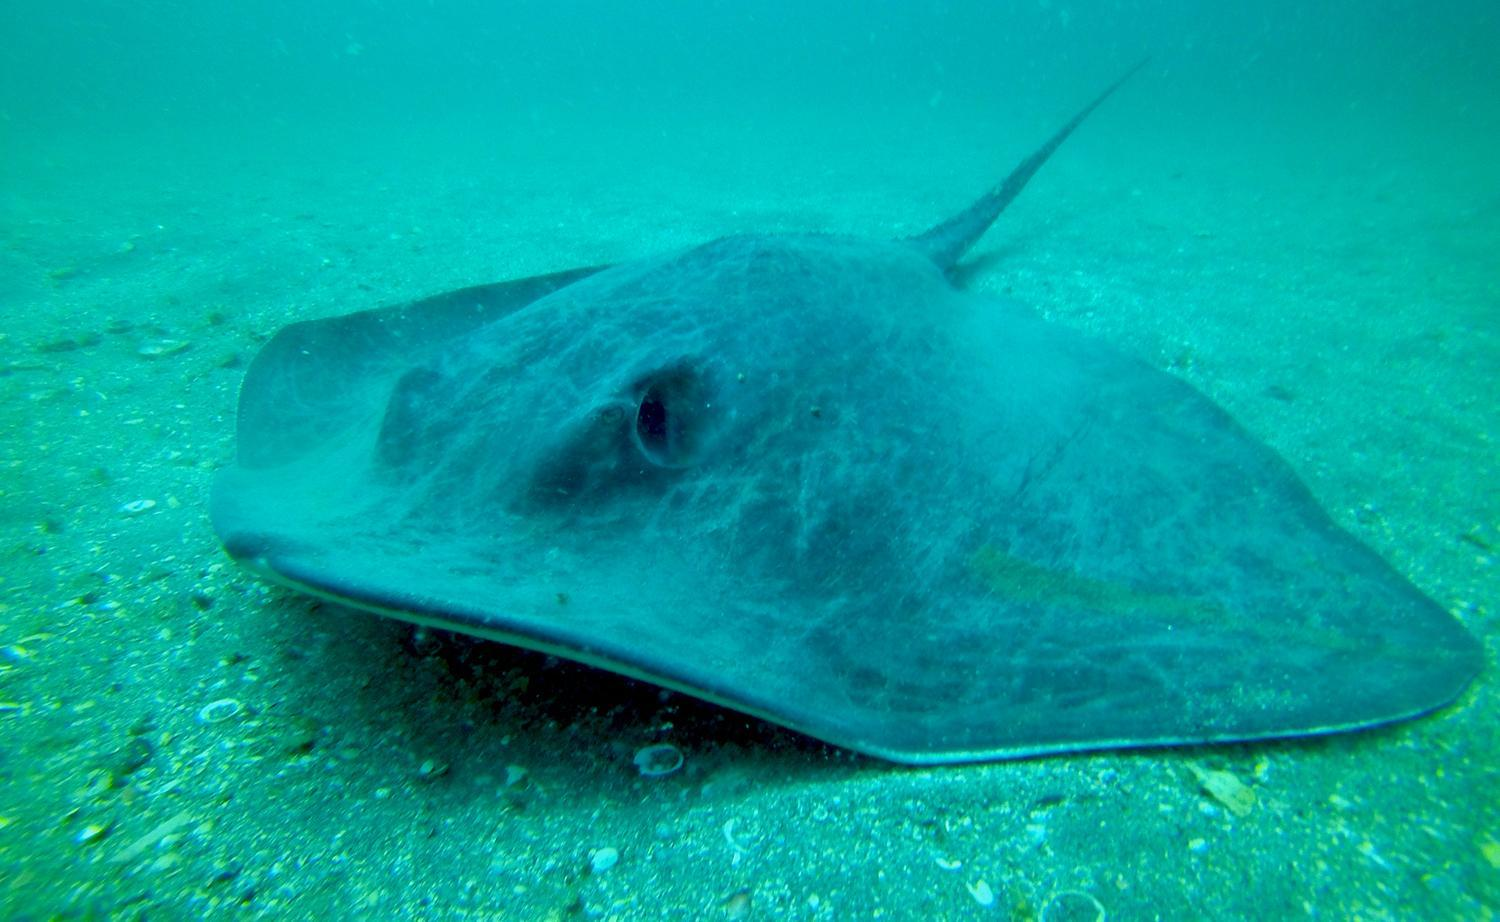 An image of a ray under water